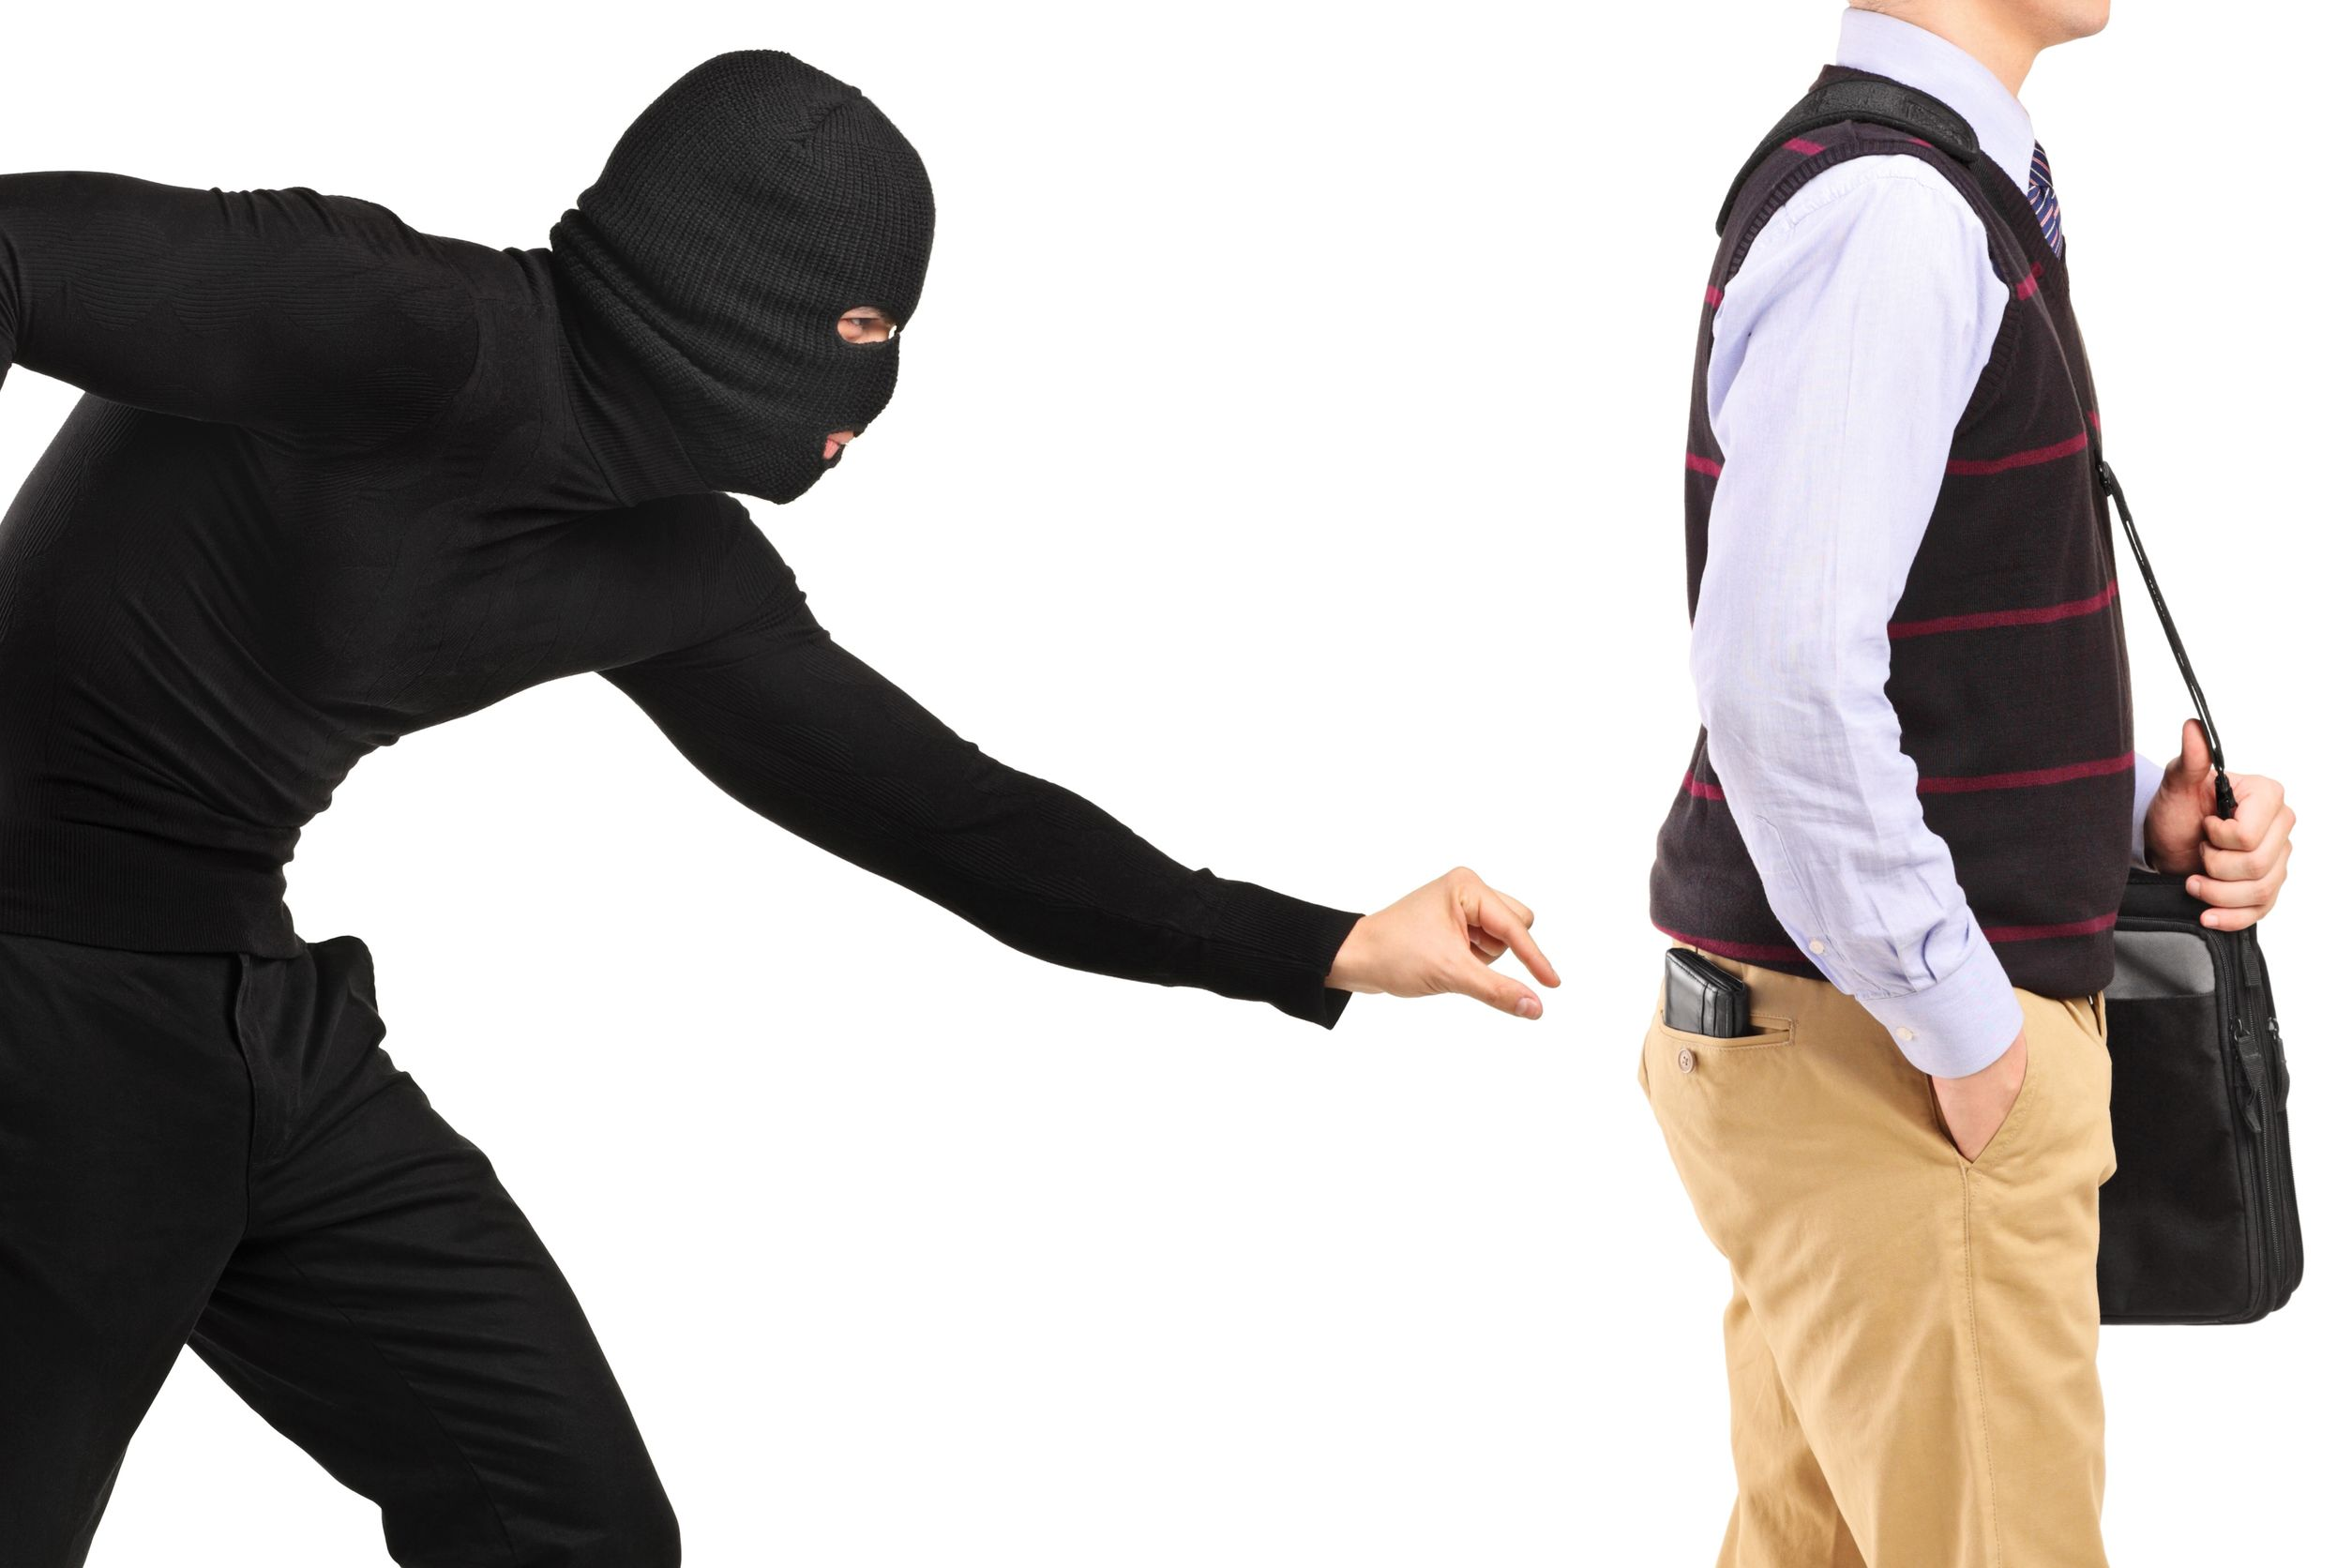 pickpocket trying to steal a wallet